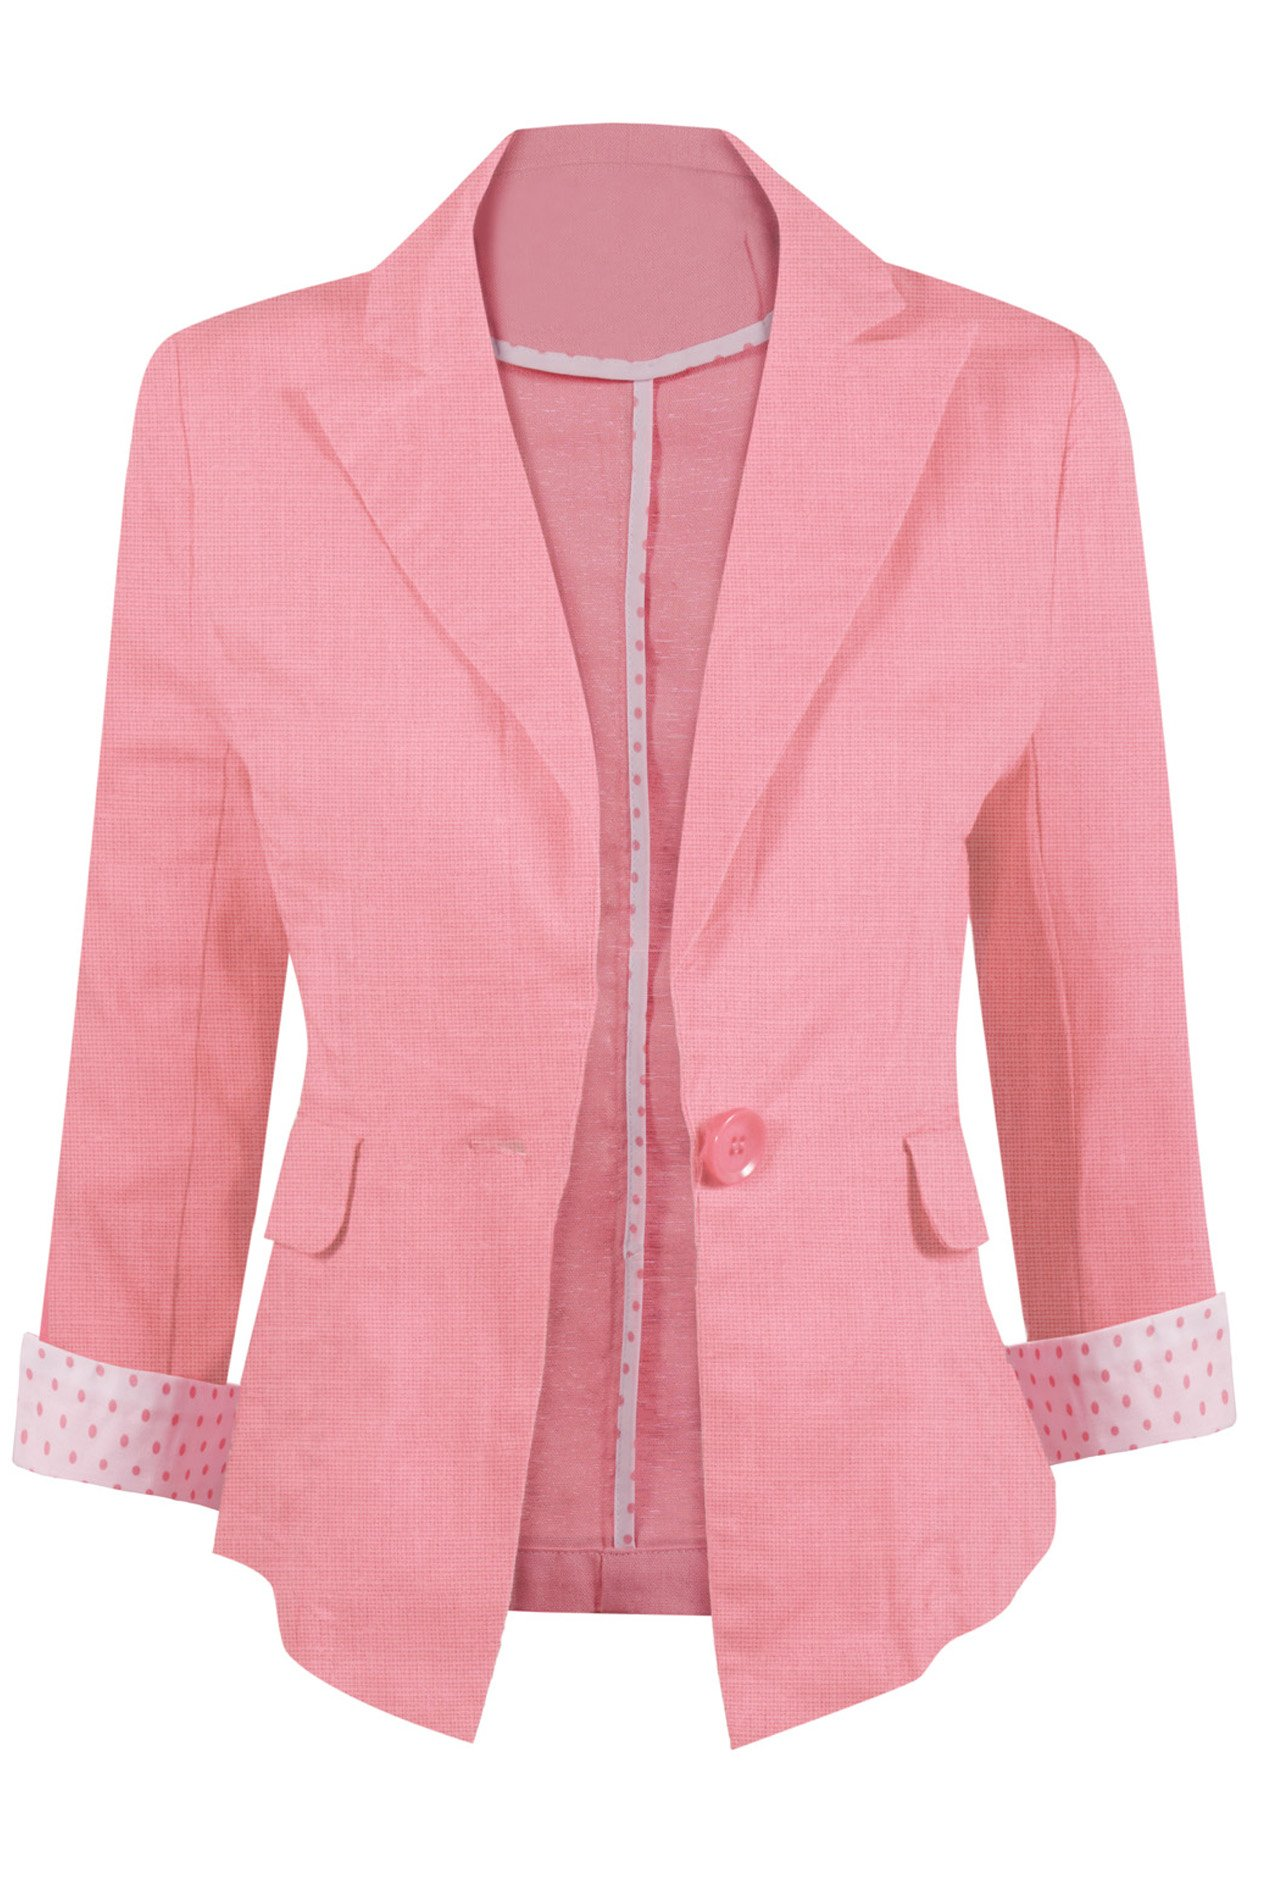 Casual Lightweight Linen Blend Blazer?with A Notched Collar and Front Single Button Closure